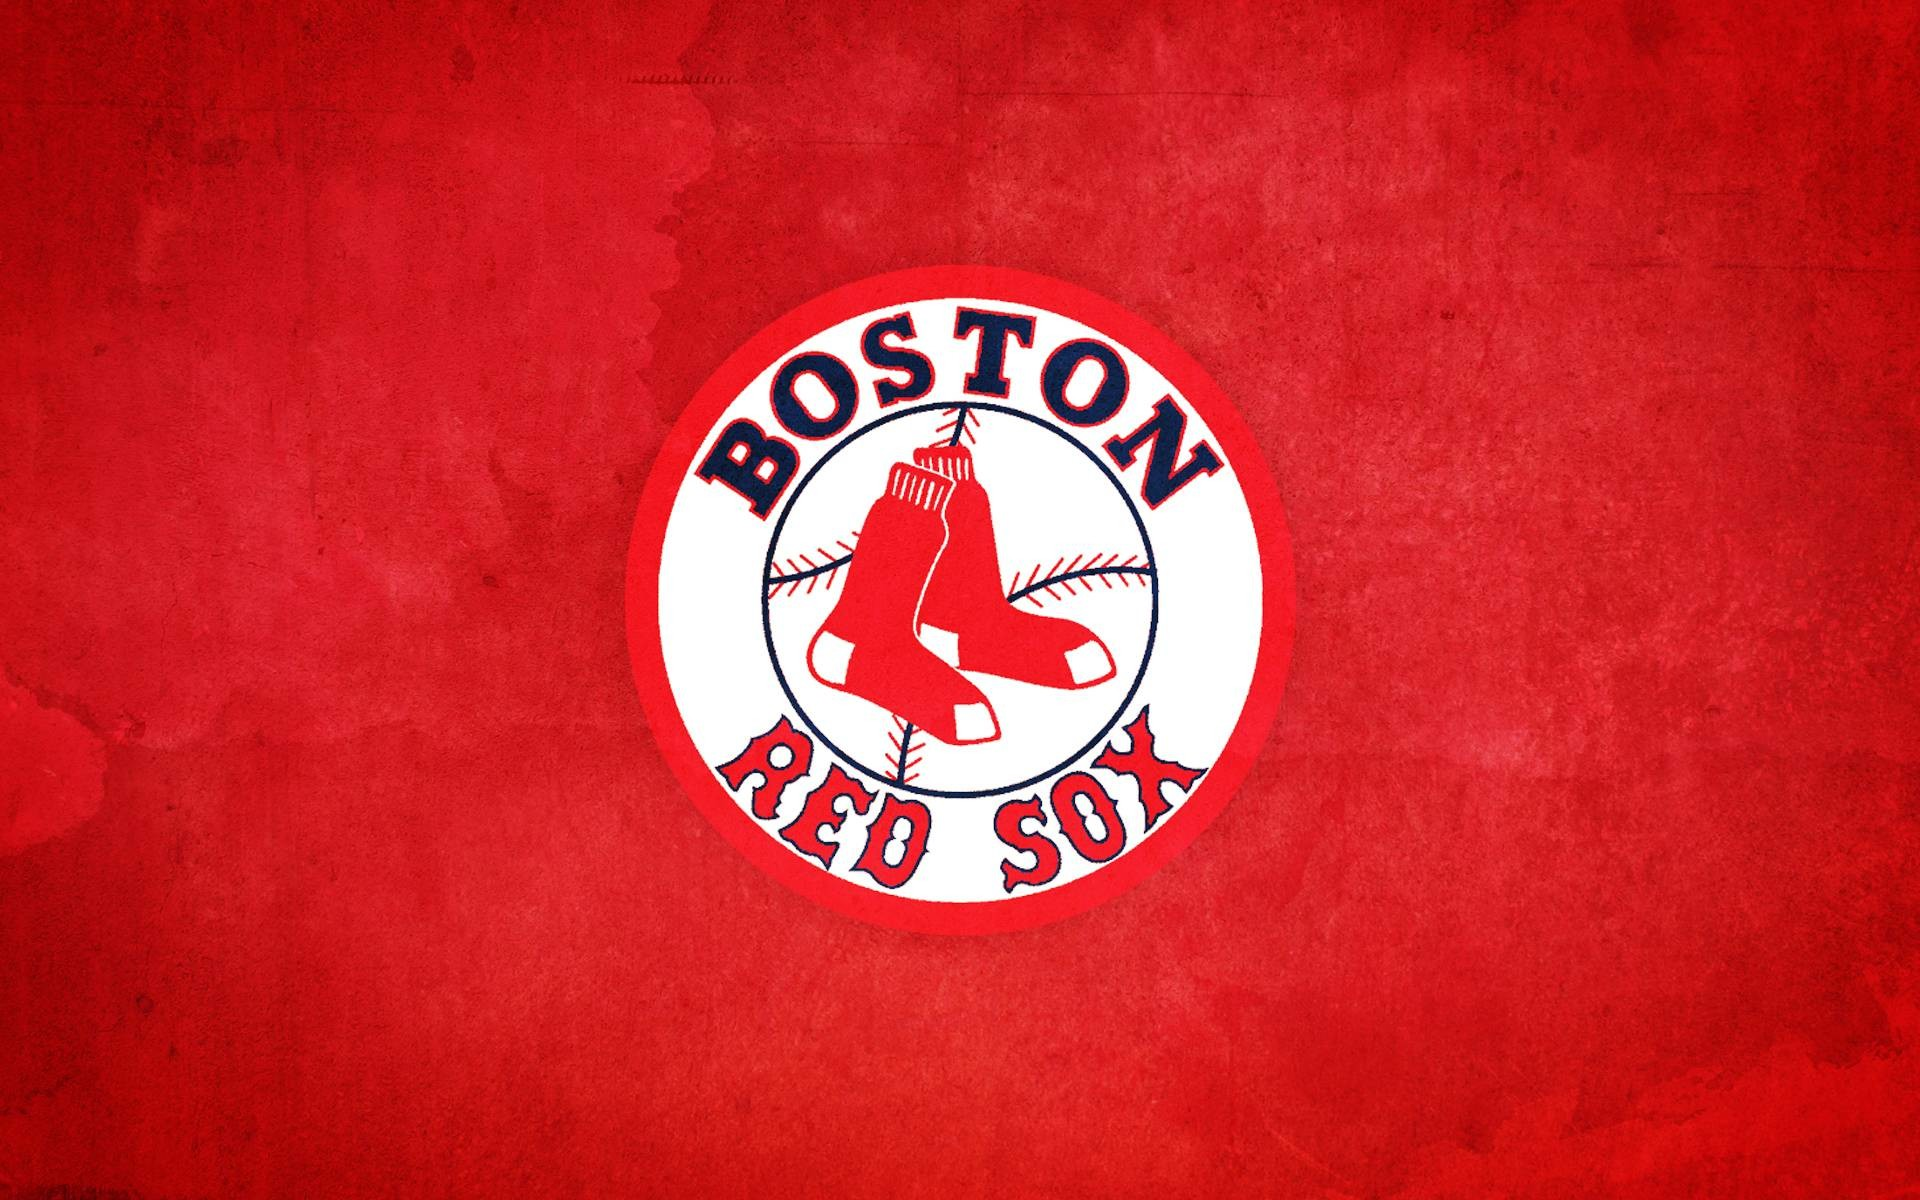 Boston Red Sox HD Wallpaper 67 images 1920x1200